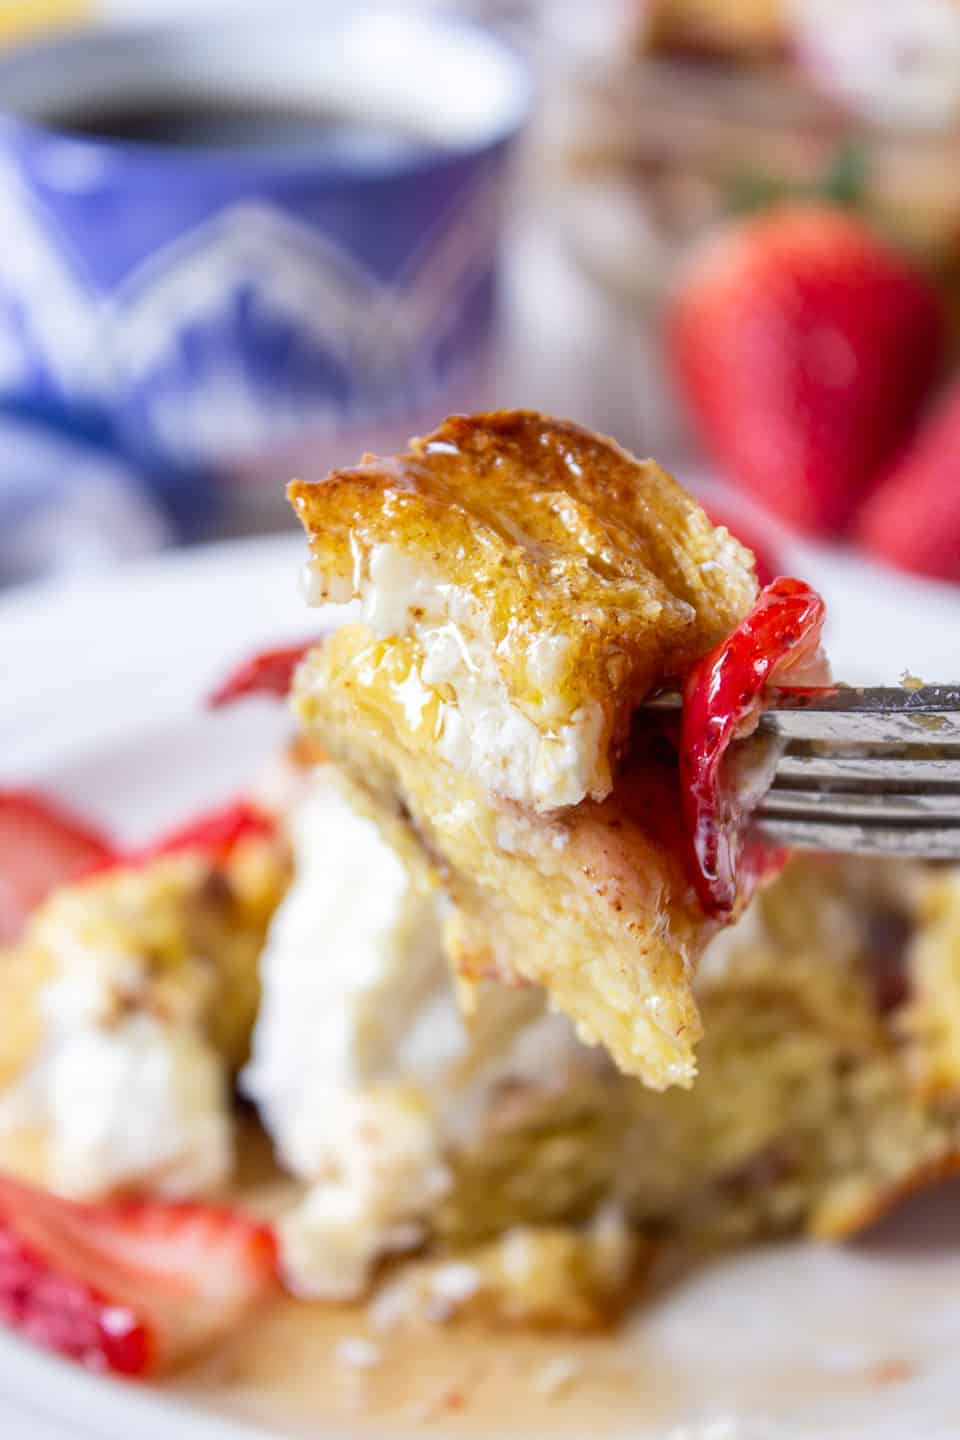 A forkful of baked french toast with strawberries.